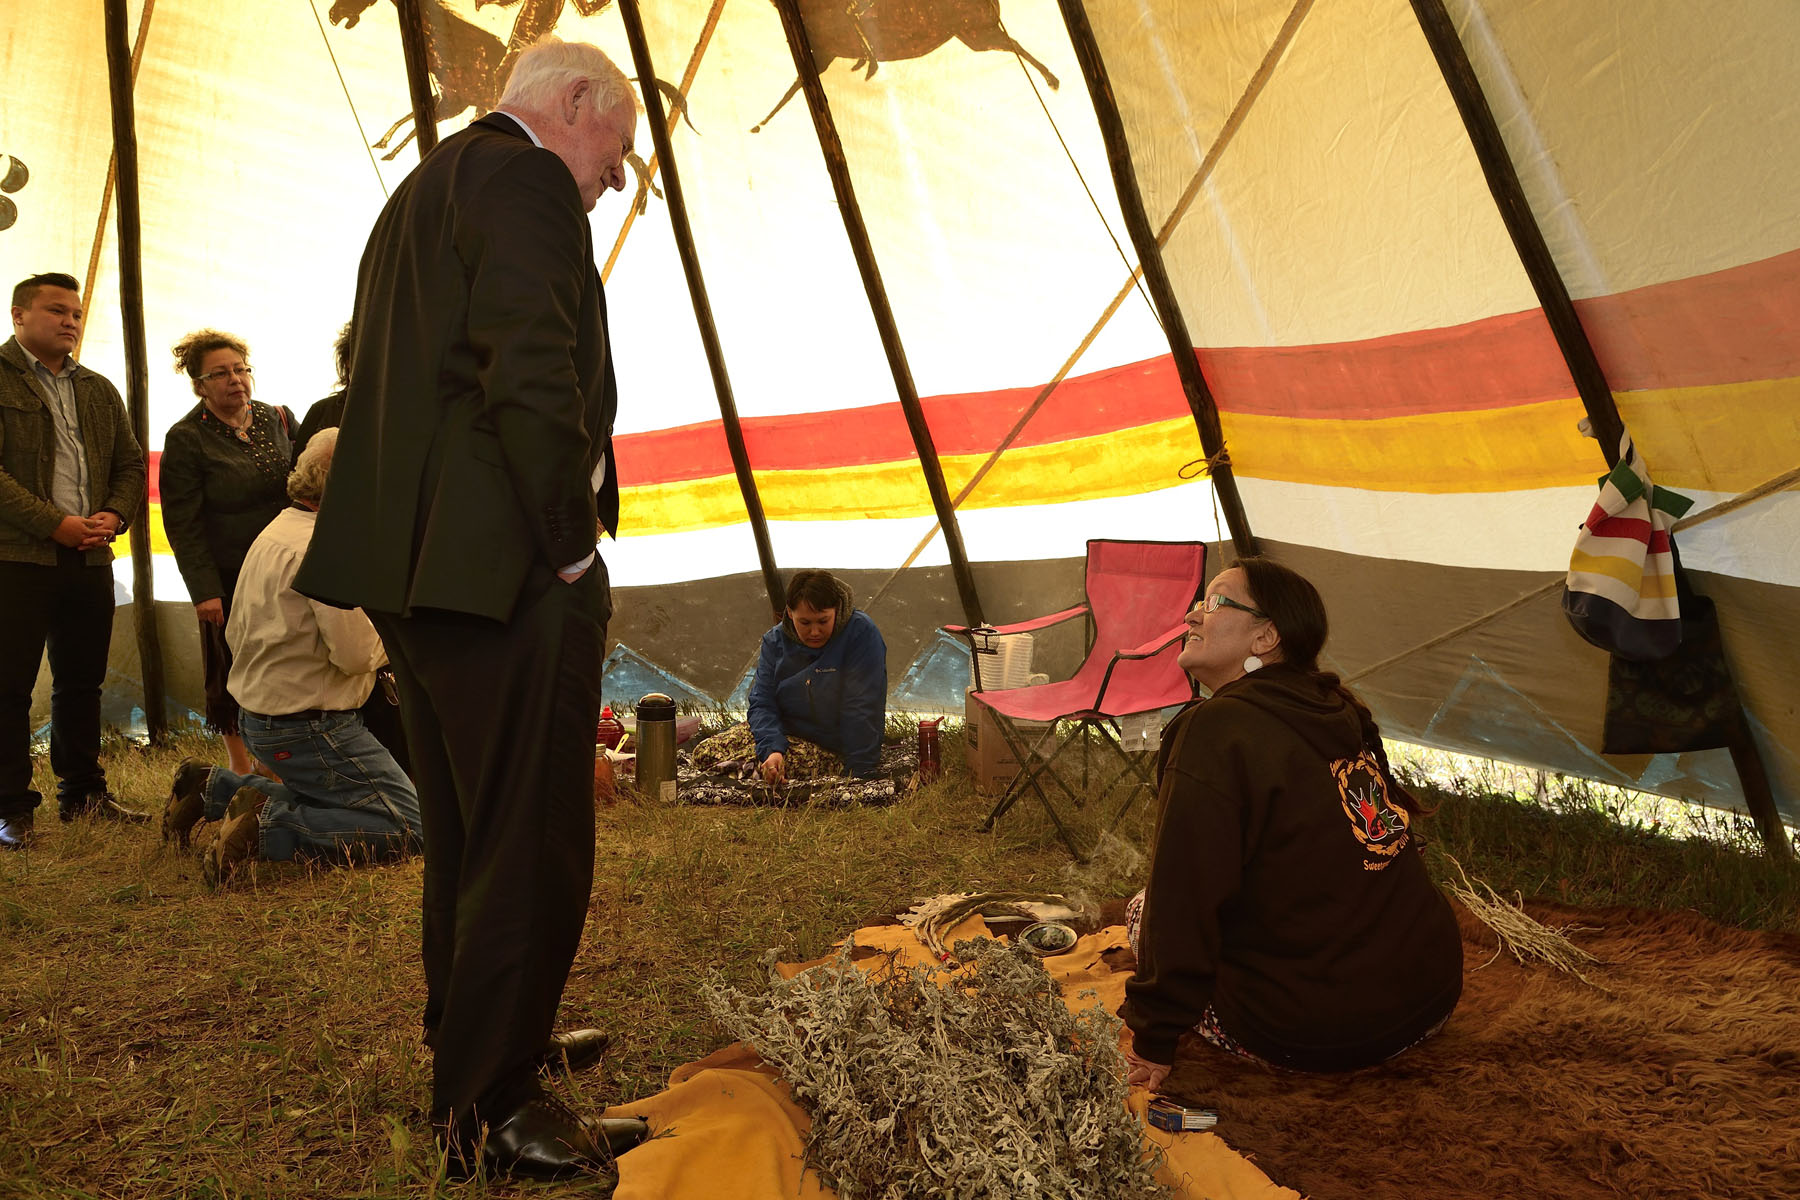 Following the ceremony, the Governor General did a walking tour of exhibits featuring First Nations' traditions and educational activities on Treaty No. 4 grounds.